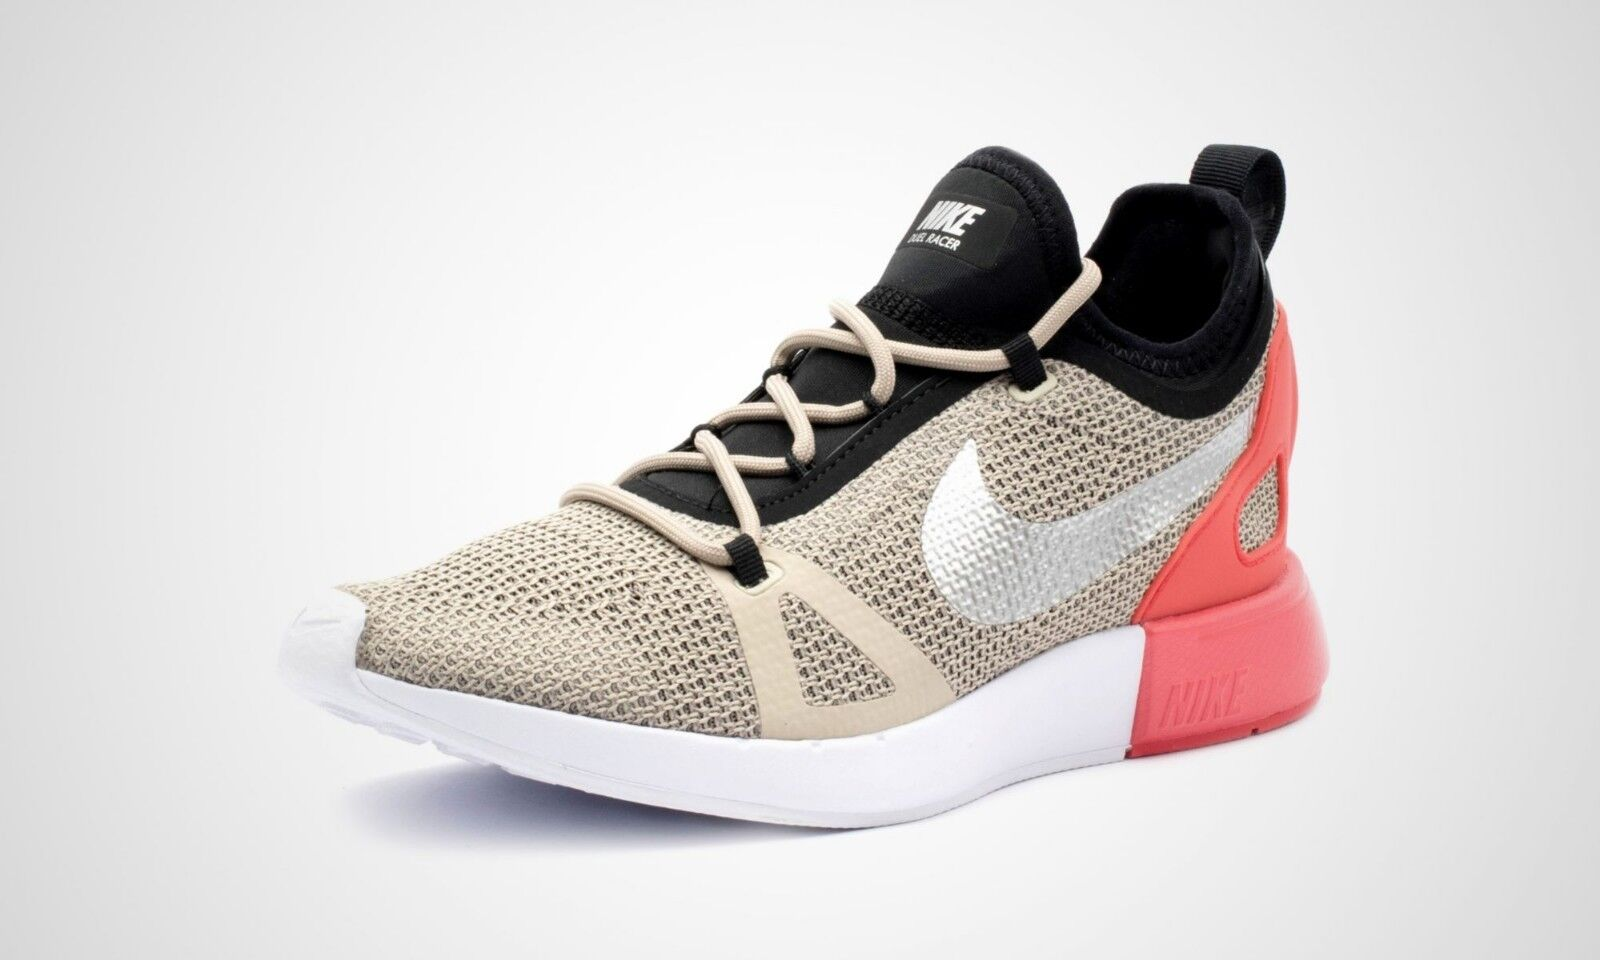 Women's Nike Duel Racer String Chrome Running Shoes Price reduction Comfortable